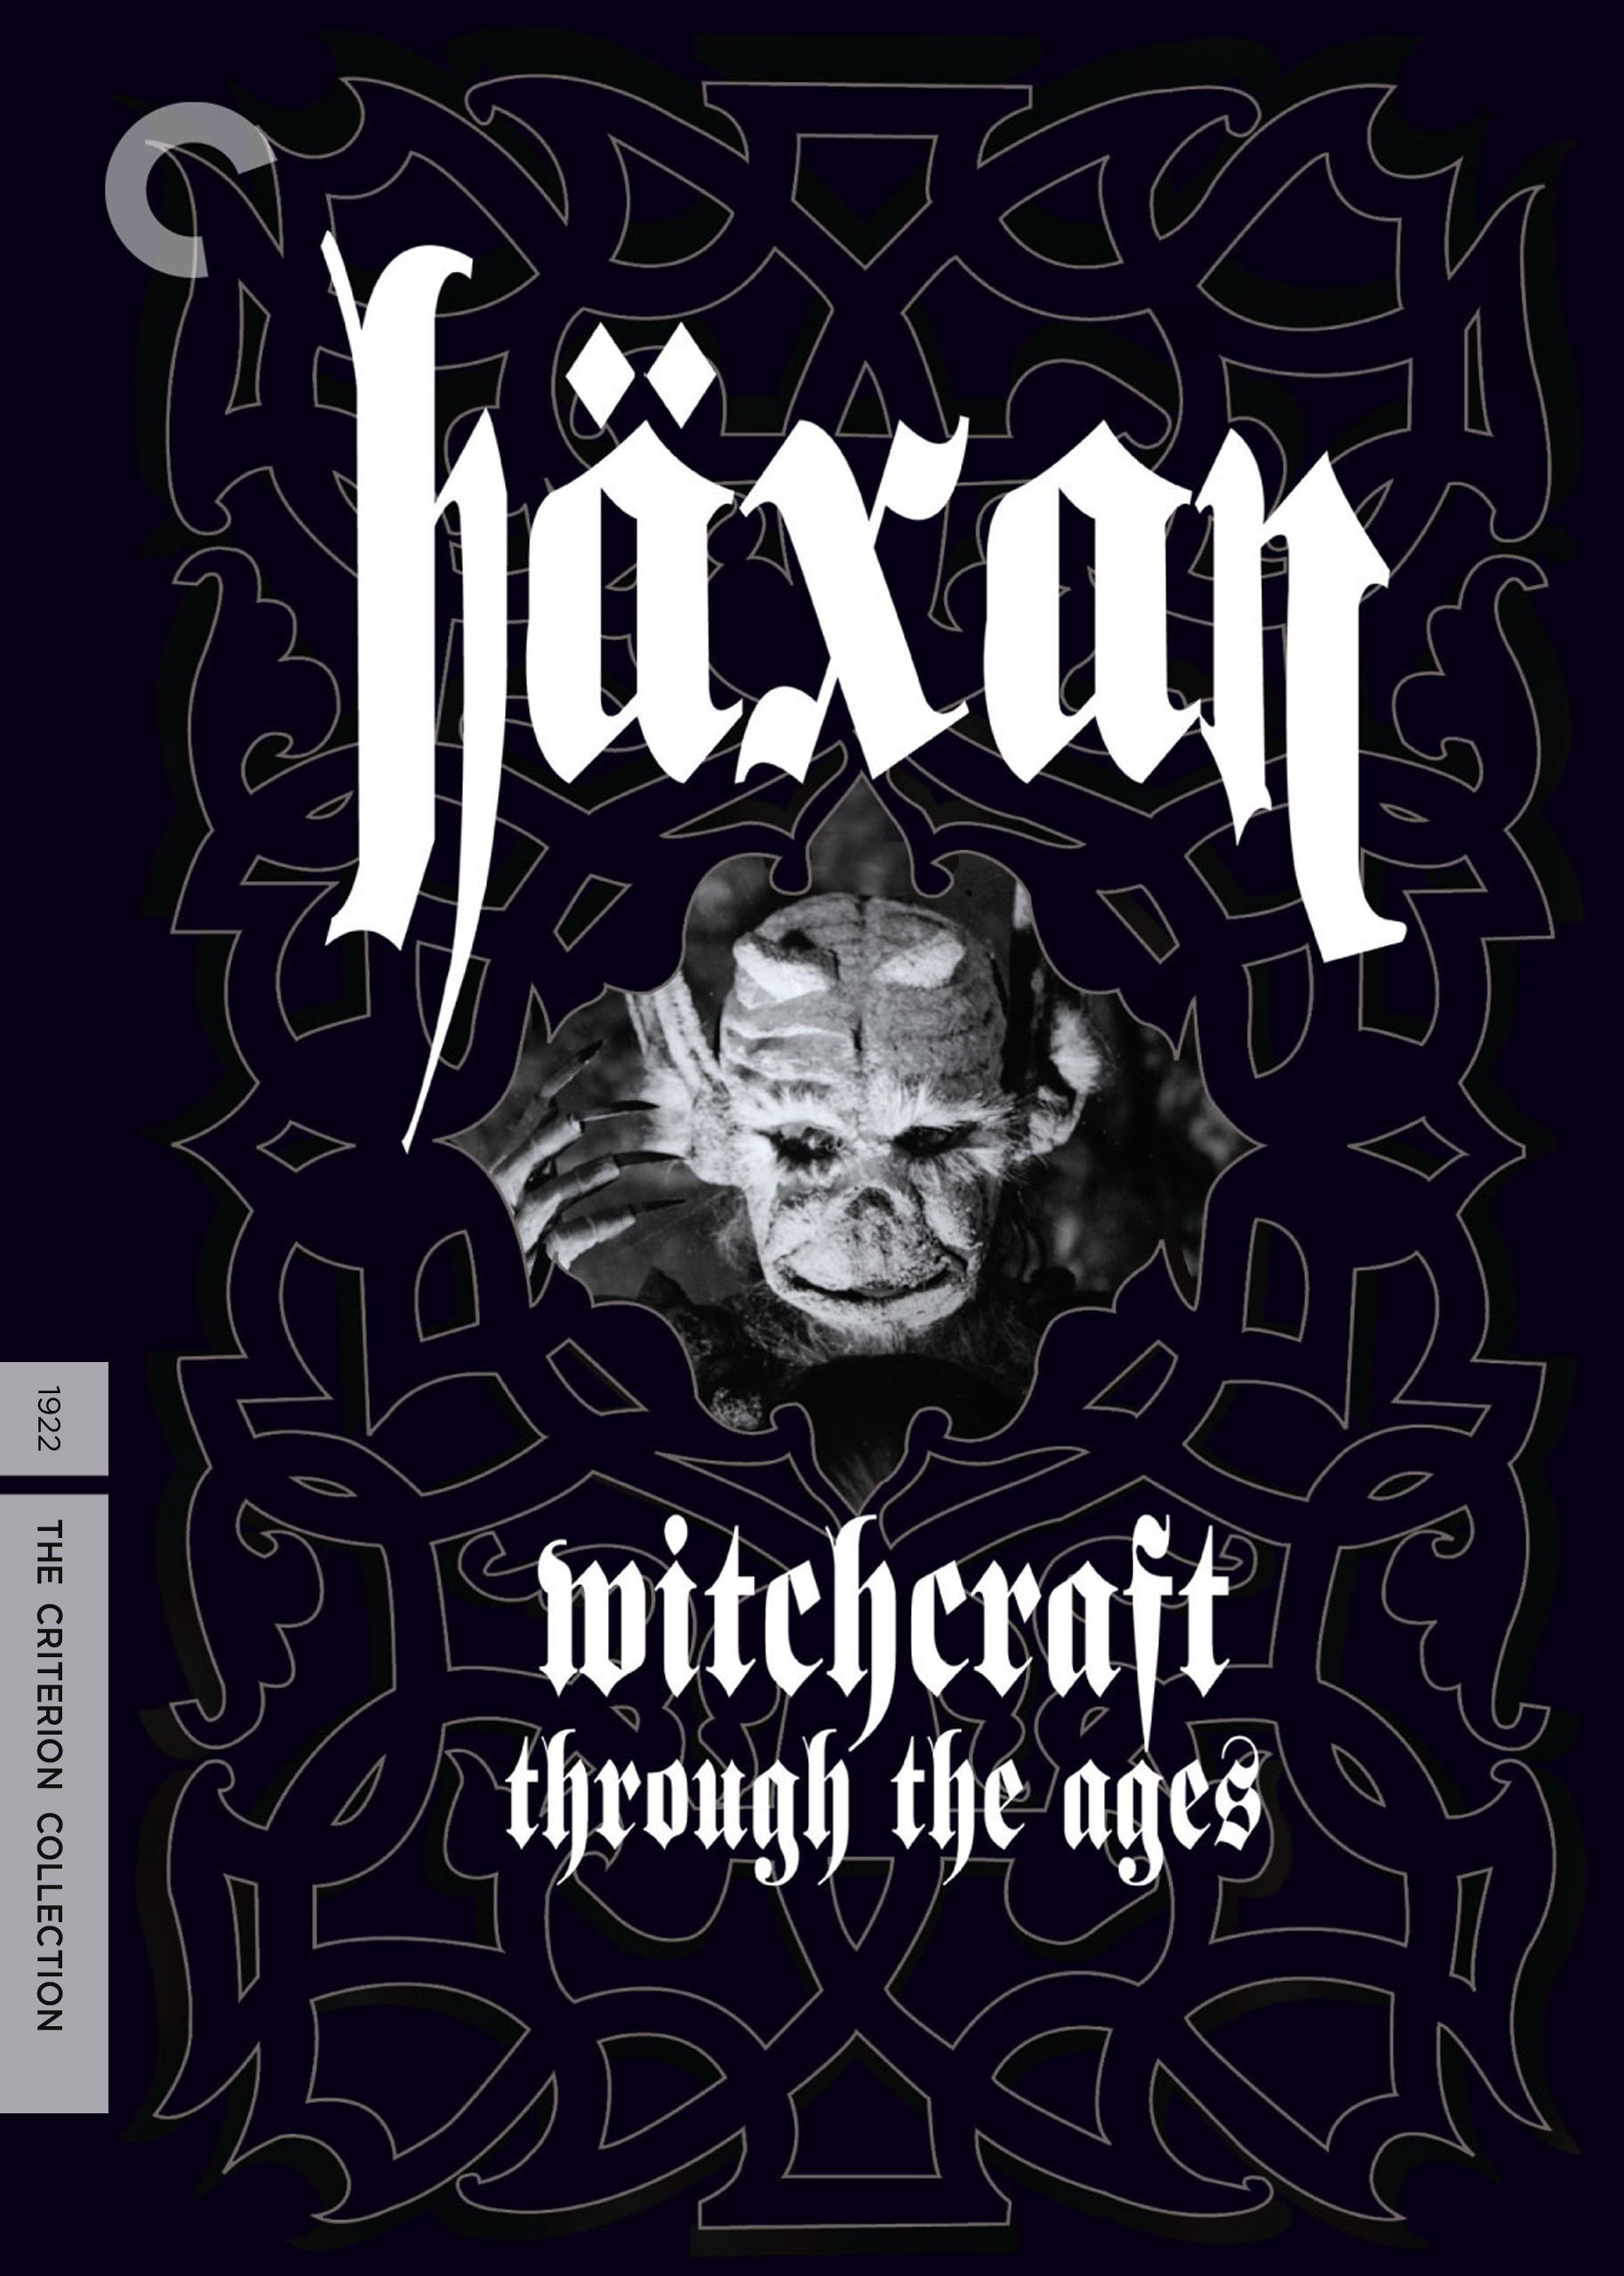 Witchcraft Through the Ages Cult Horror movie poster print 2 1922 Häxan